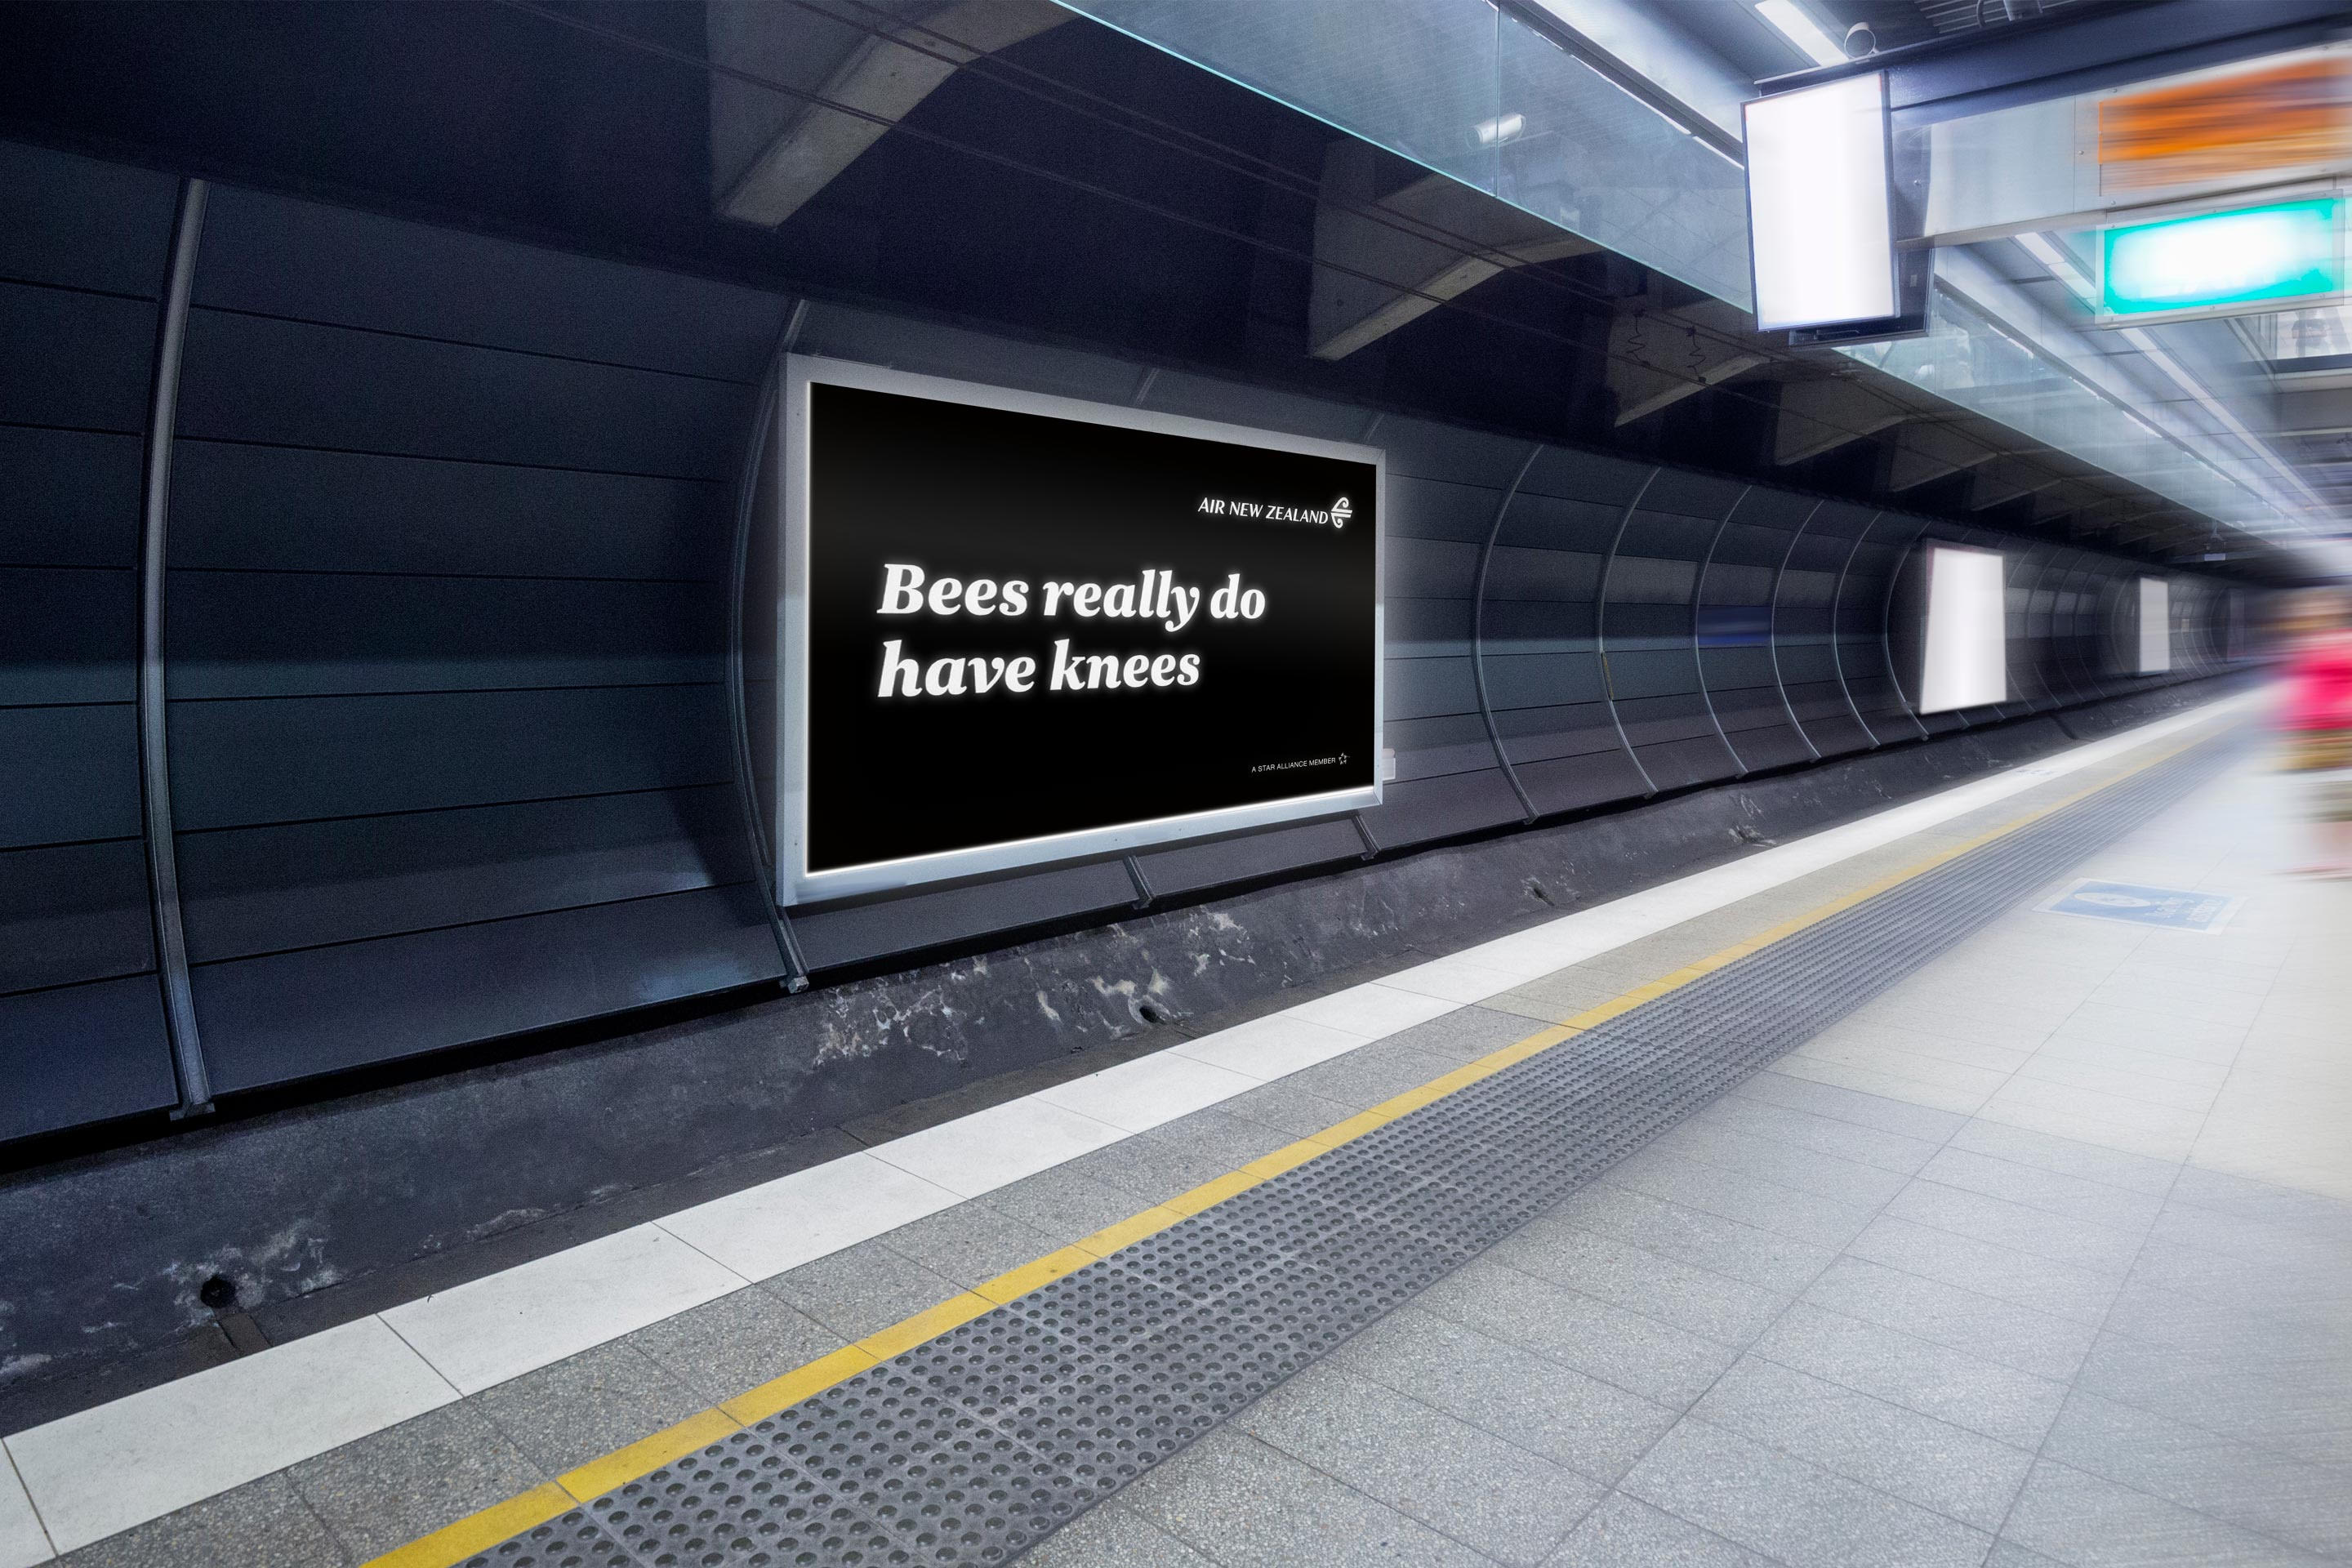 Air New Zealand Bet You Didn't Know